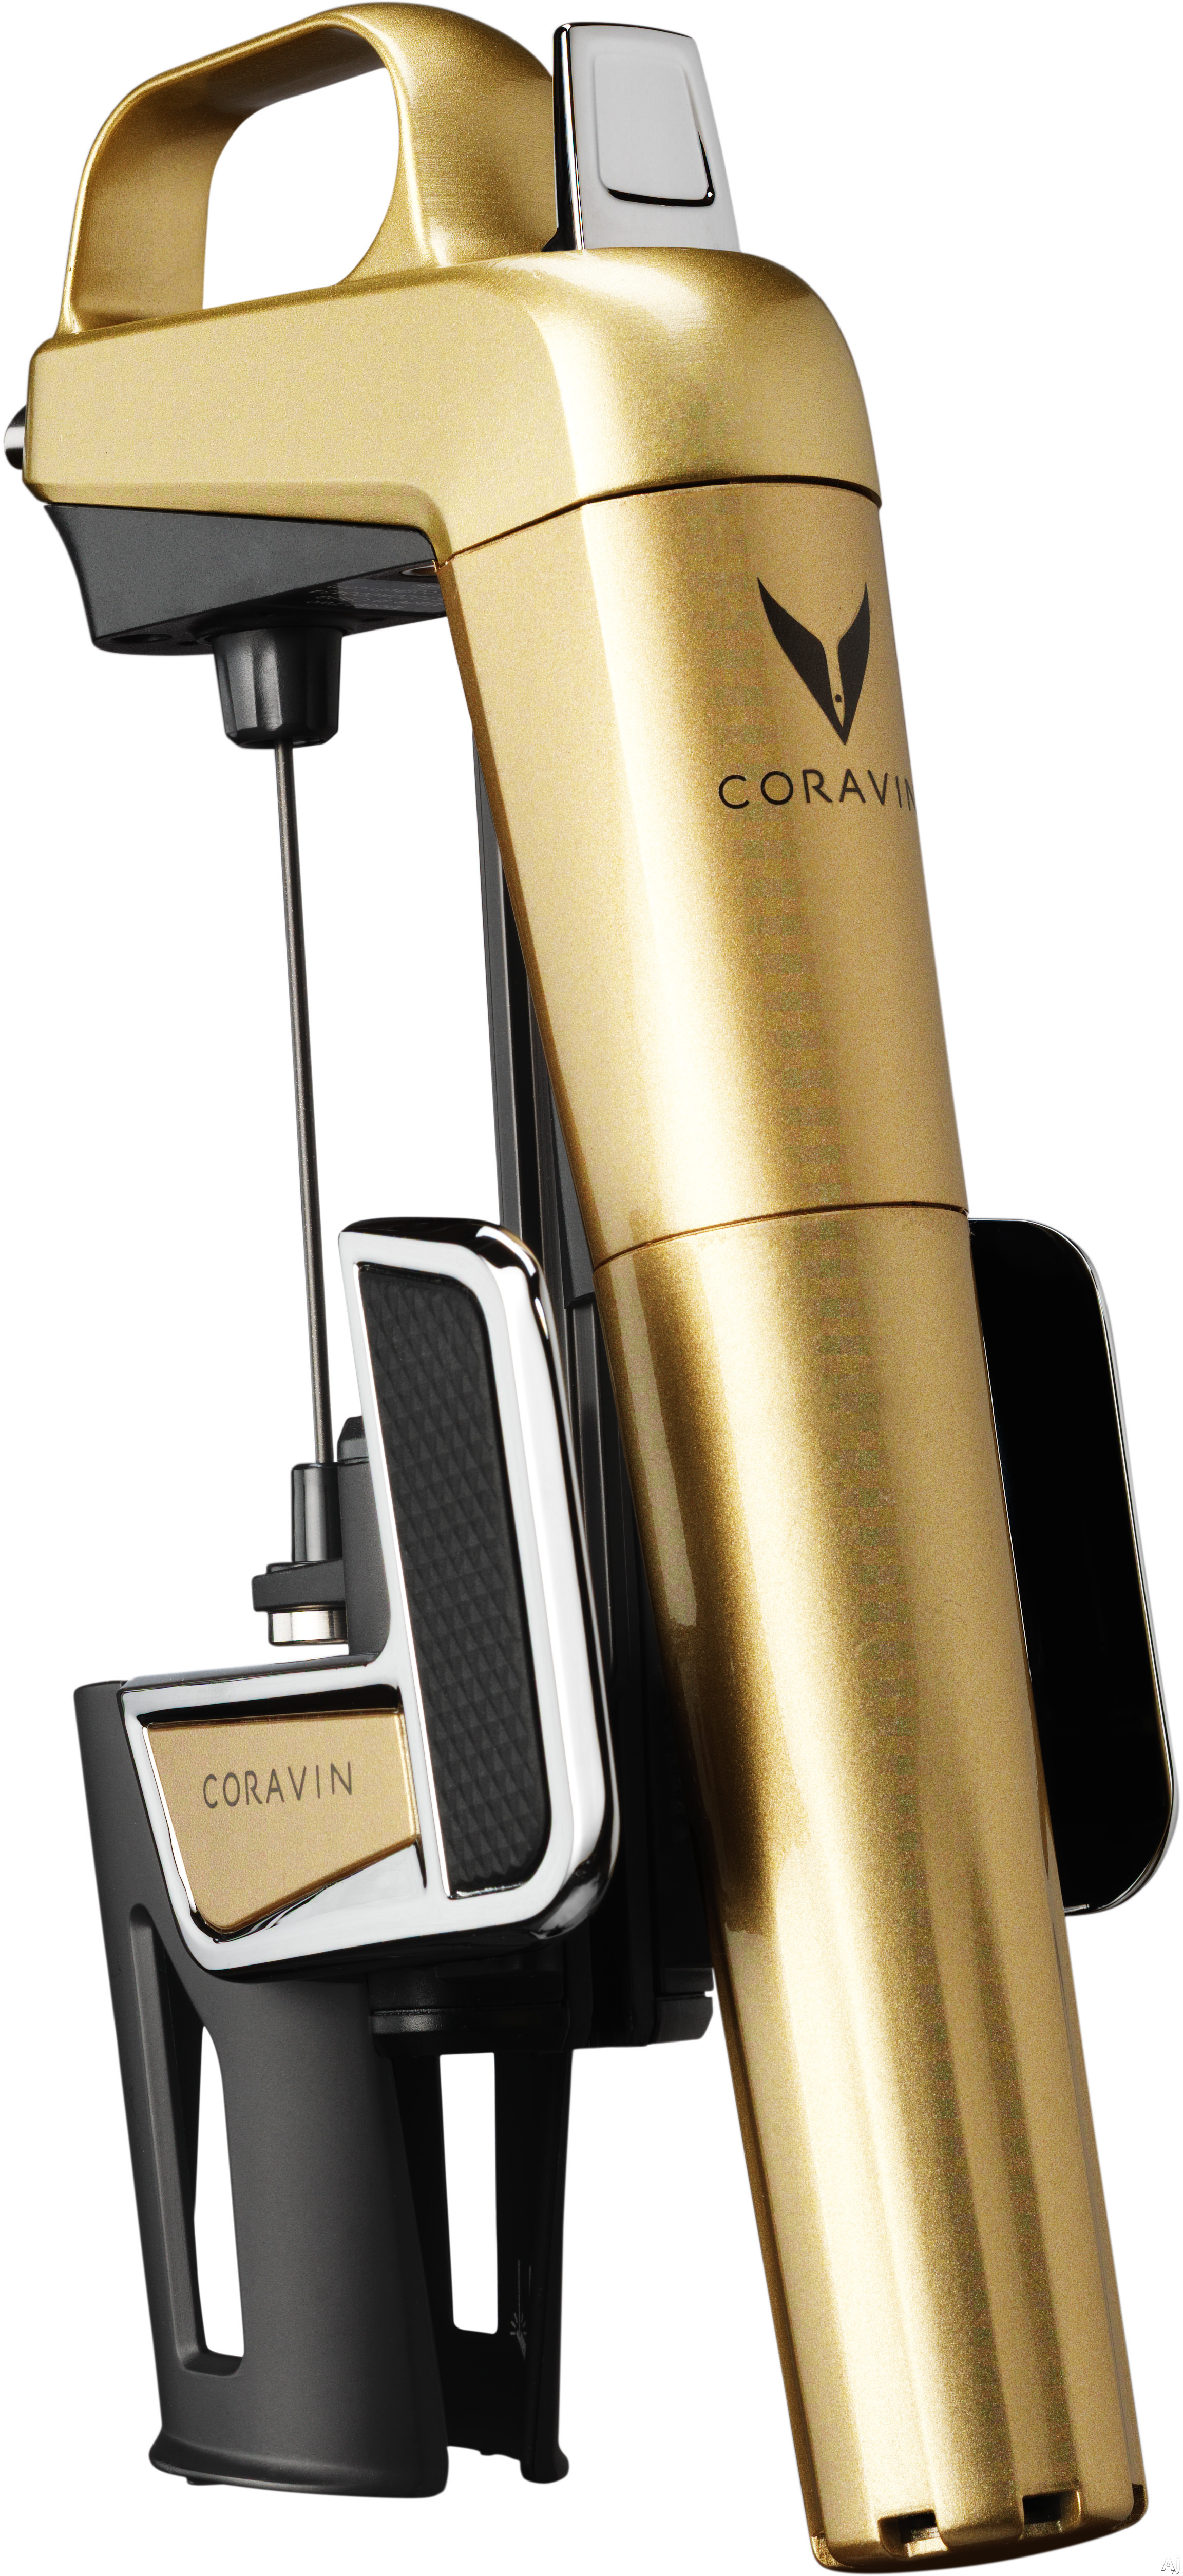 Coravin 10050x Model Two Elite Wine Pouring System With Load Cell Technology, Coravin Wine Needle And Properfit Clamp